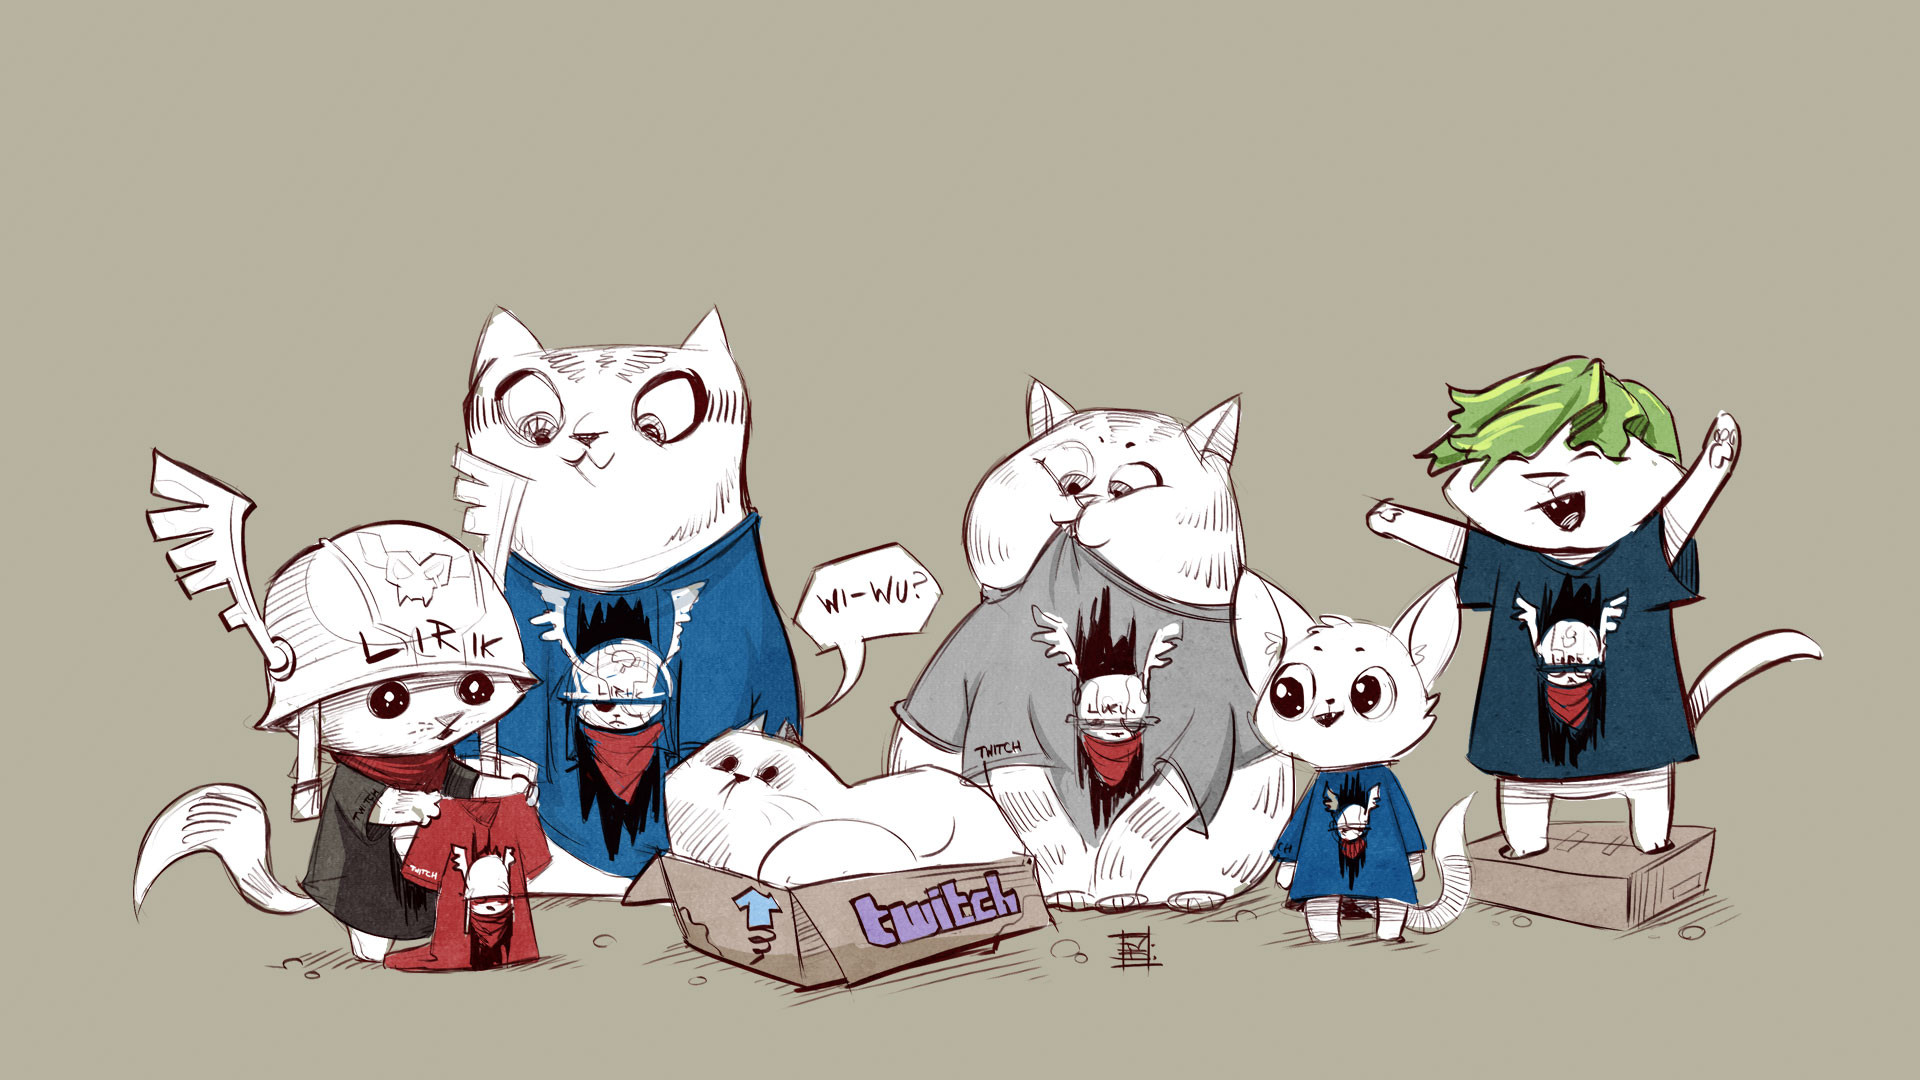 Res: 1920x1080, Lirik Wallpaper Shirt Cats []